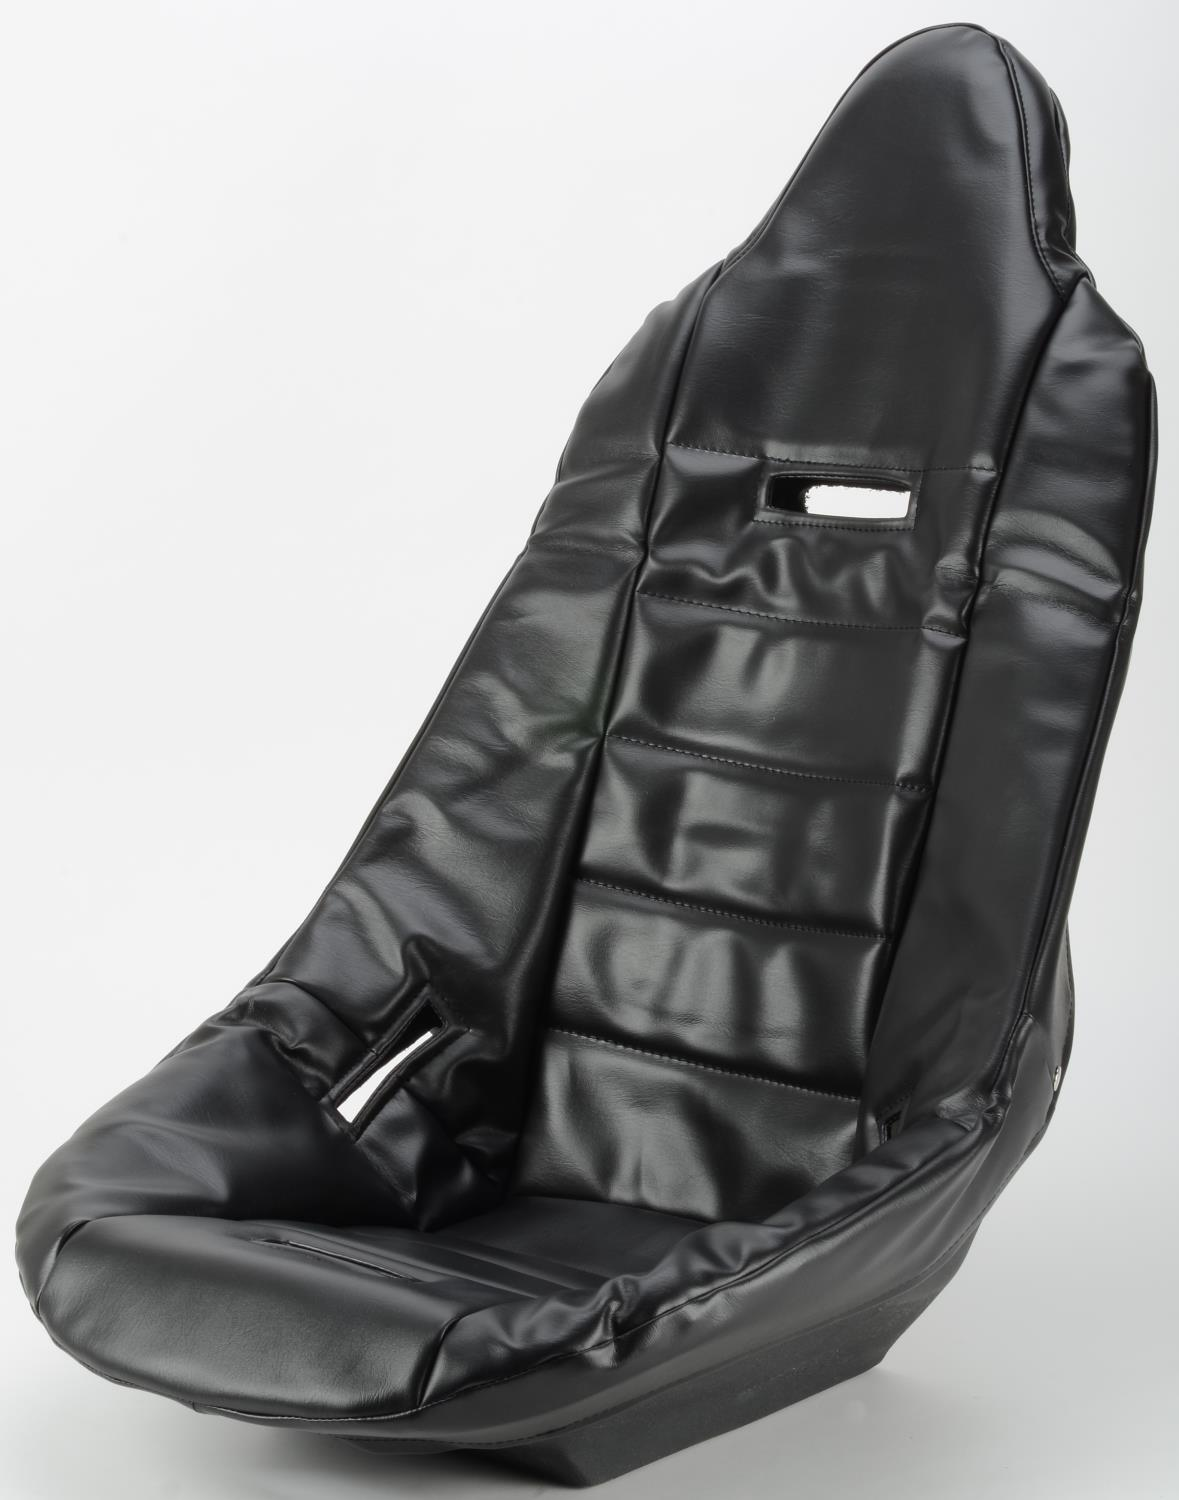 JEGS Performance Products 70270 - JEGS Pro High Back Race Seats and Seat Covers